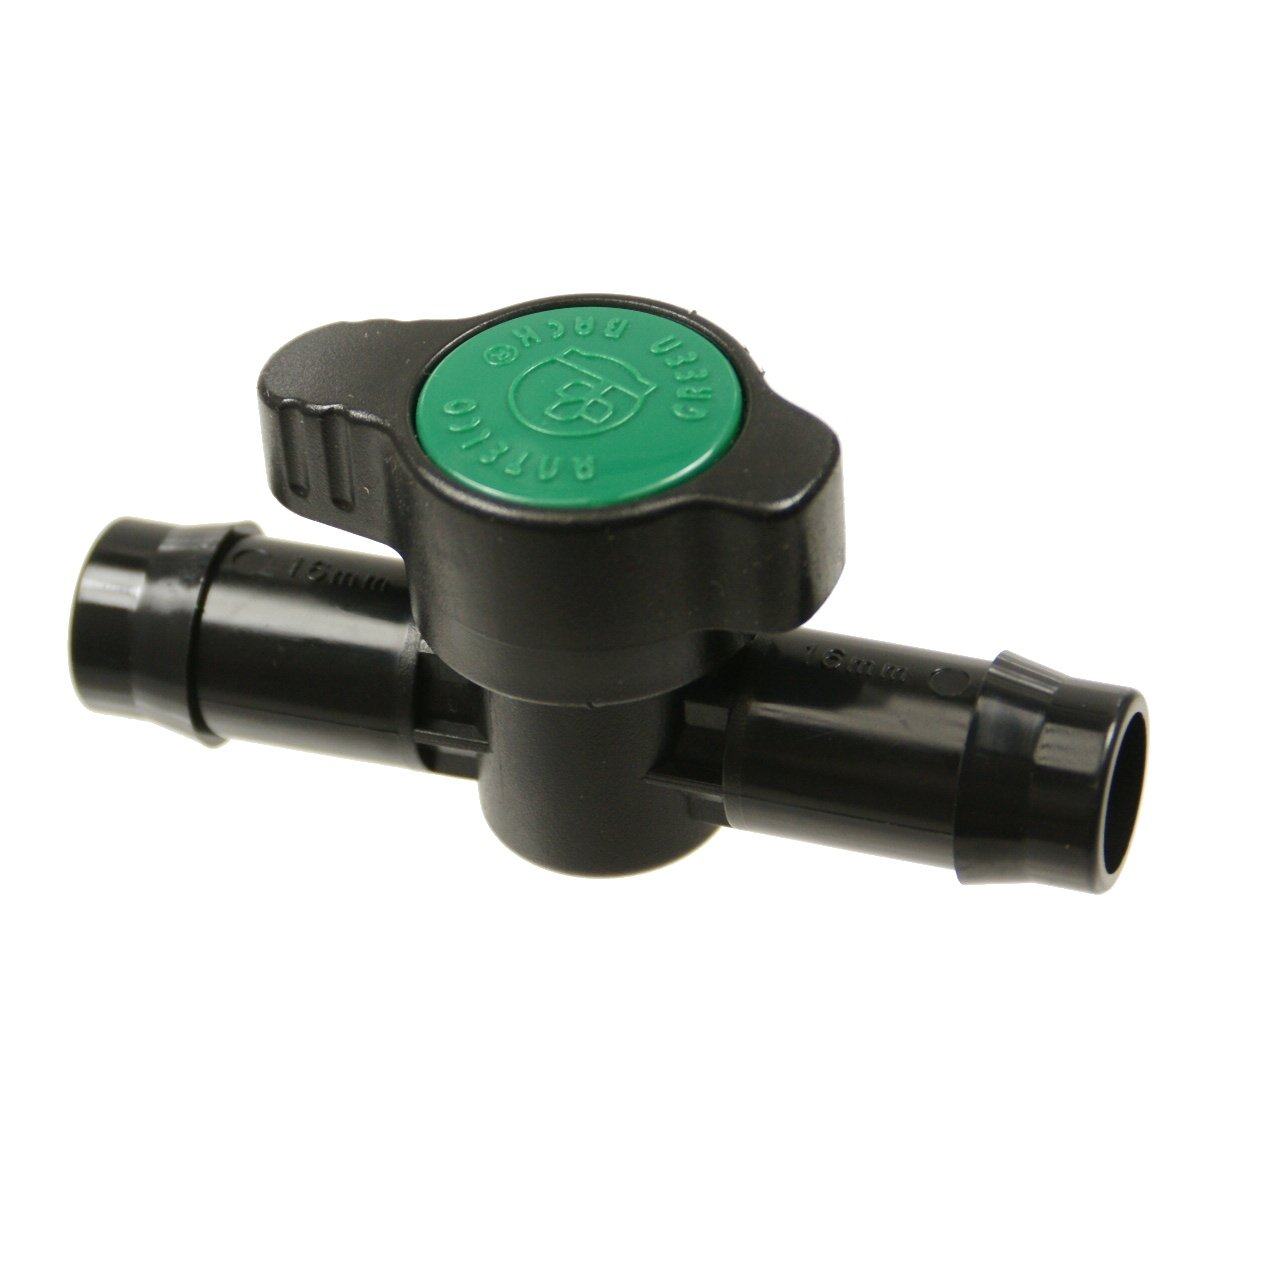 Antelco 45515 Green Back In-line Coupling Valve for 1/2' Drip Irrigation Systems